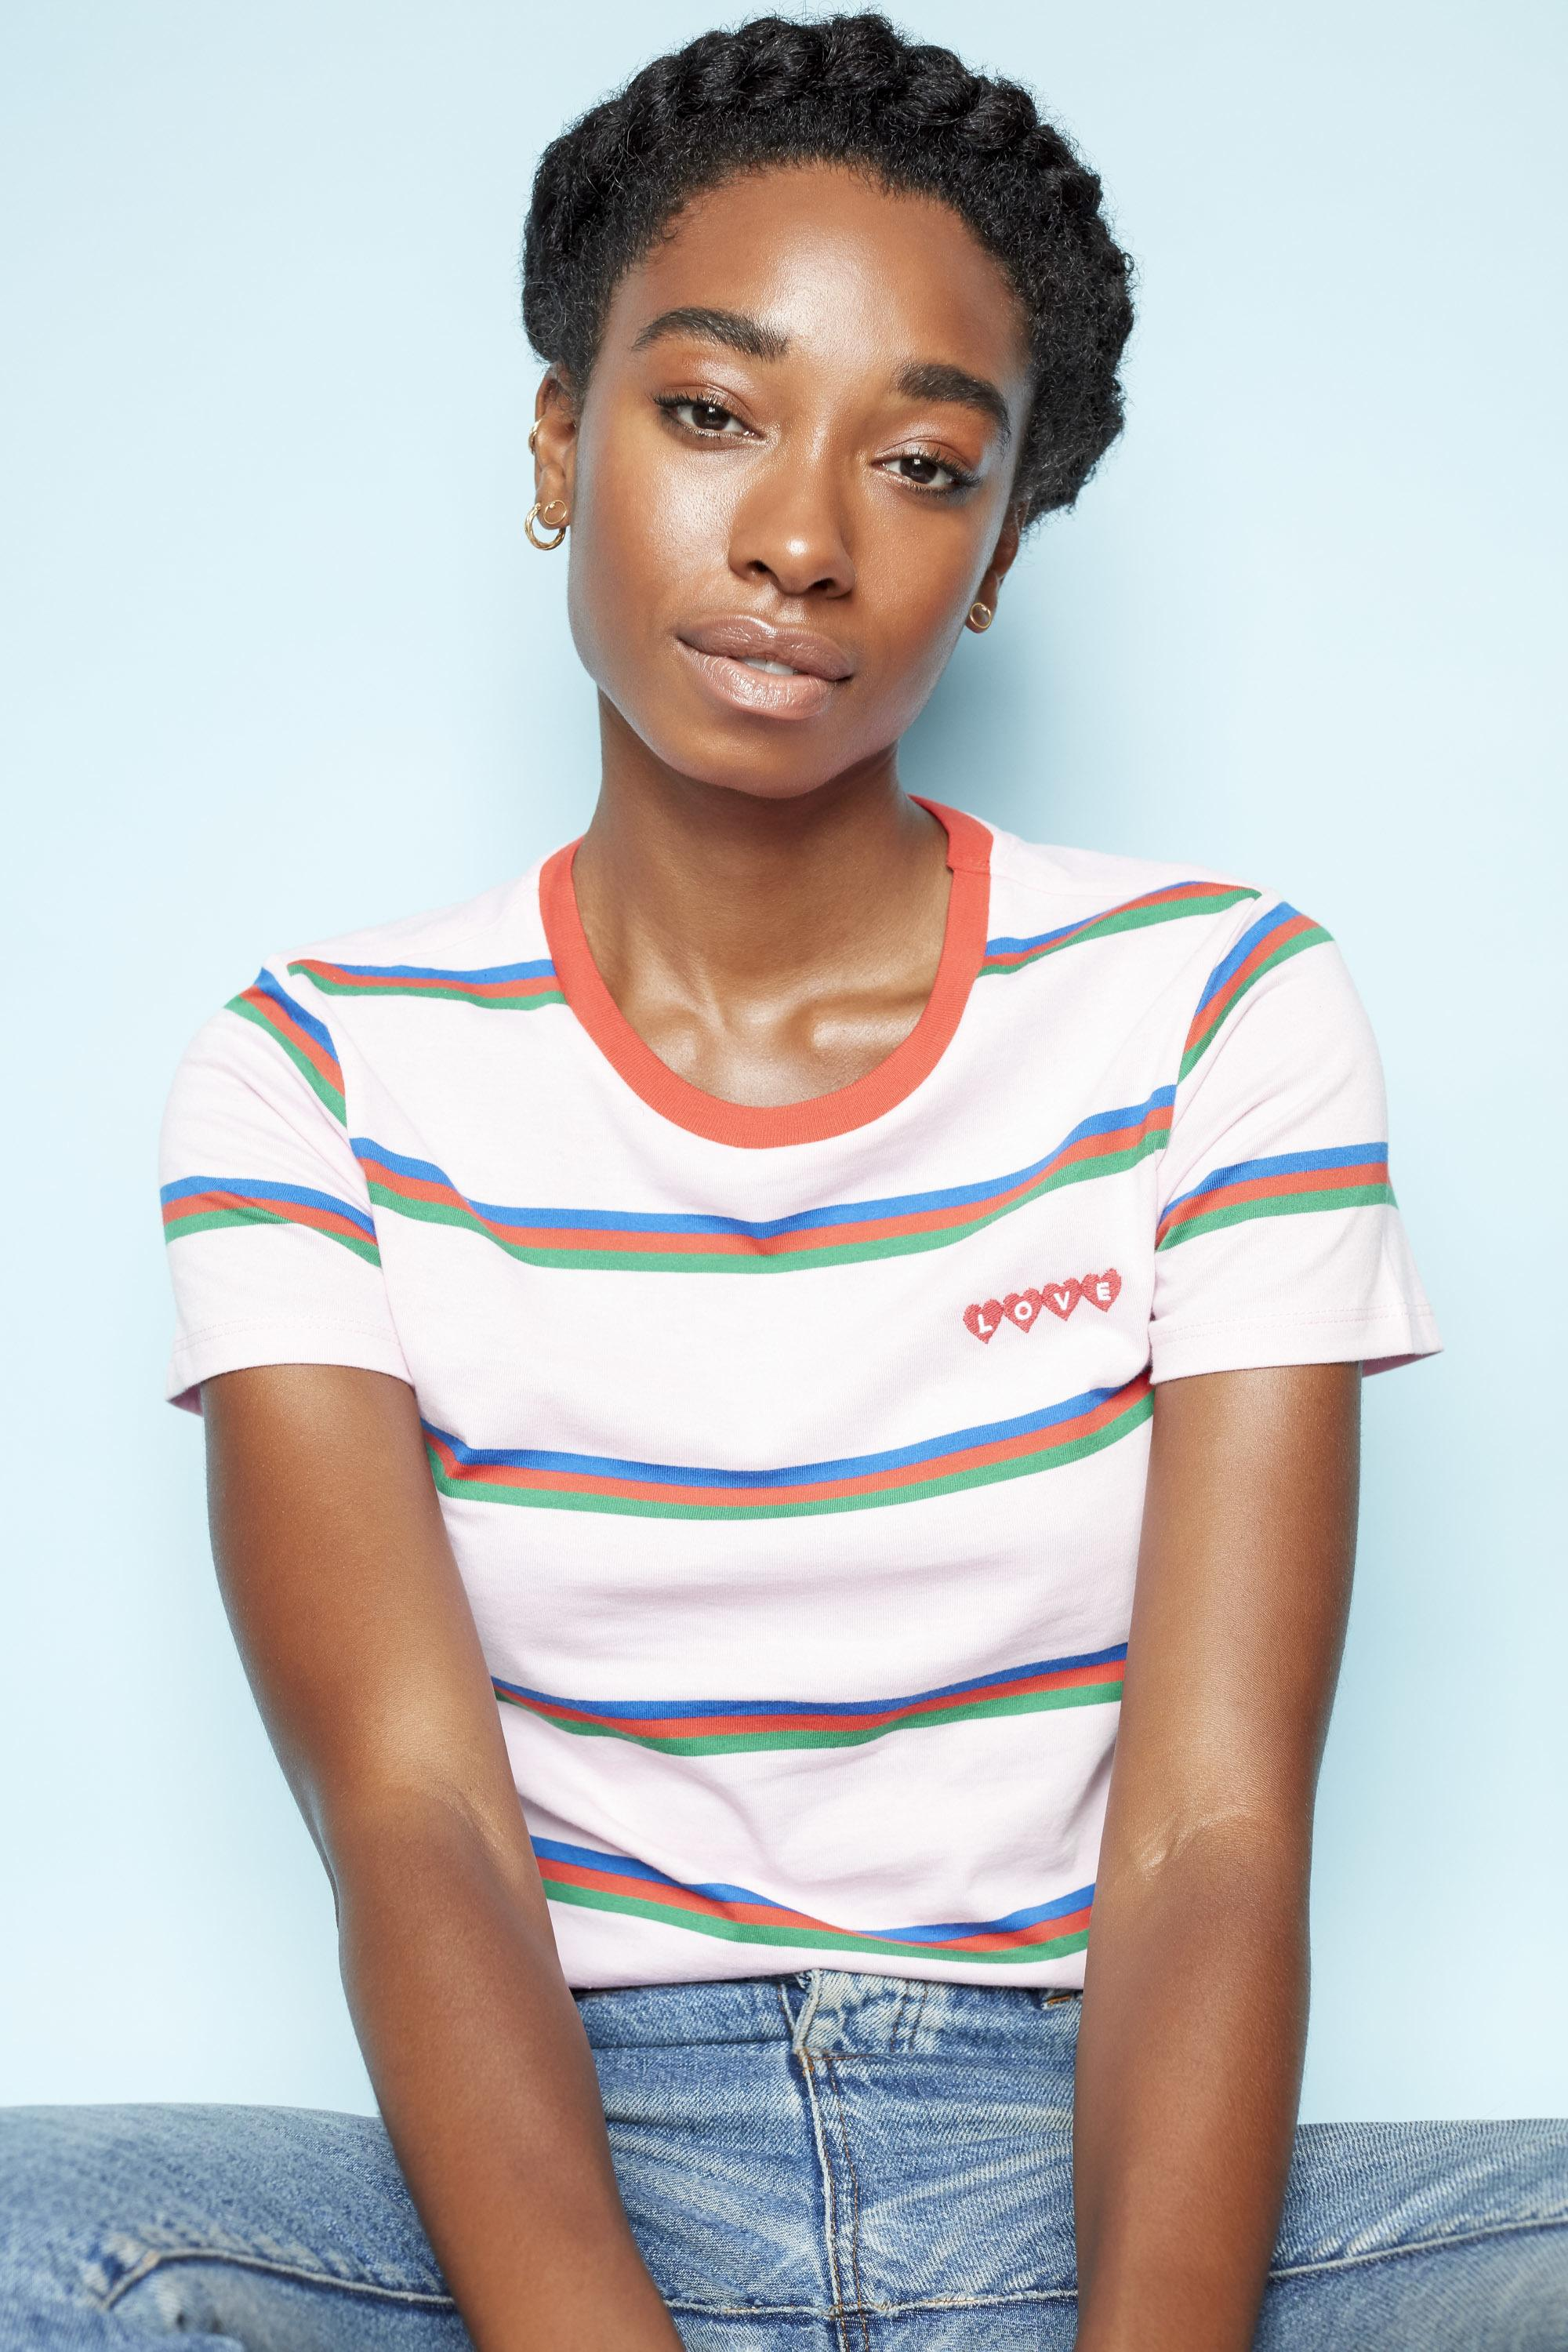 Low manipulation hairstyles: Photo of a young black woman with natural hair styled in a halo braid updo